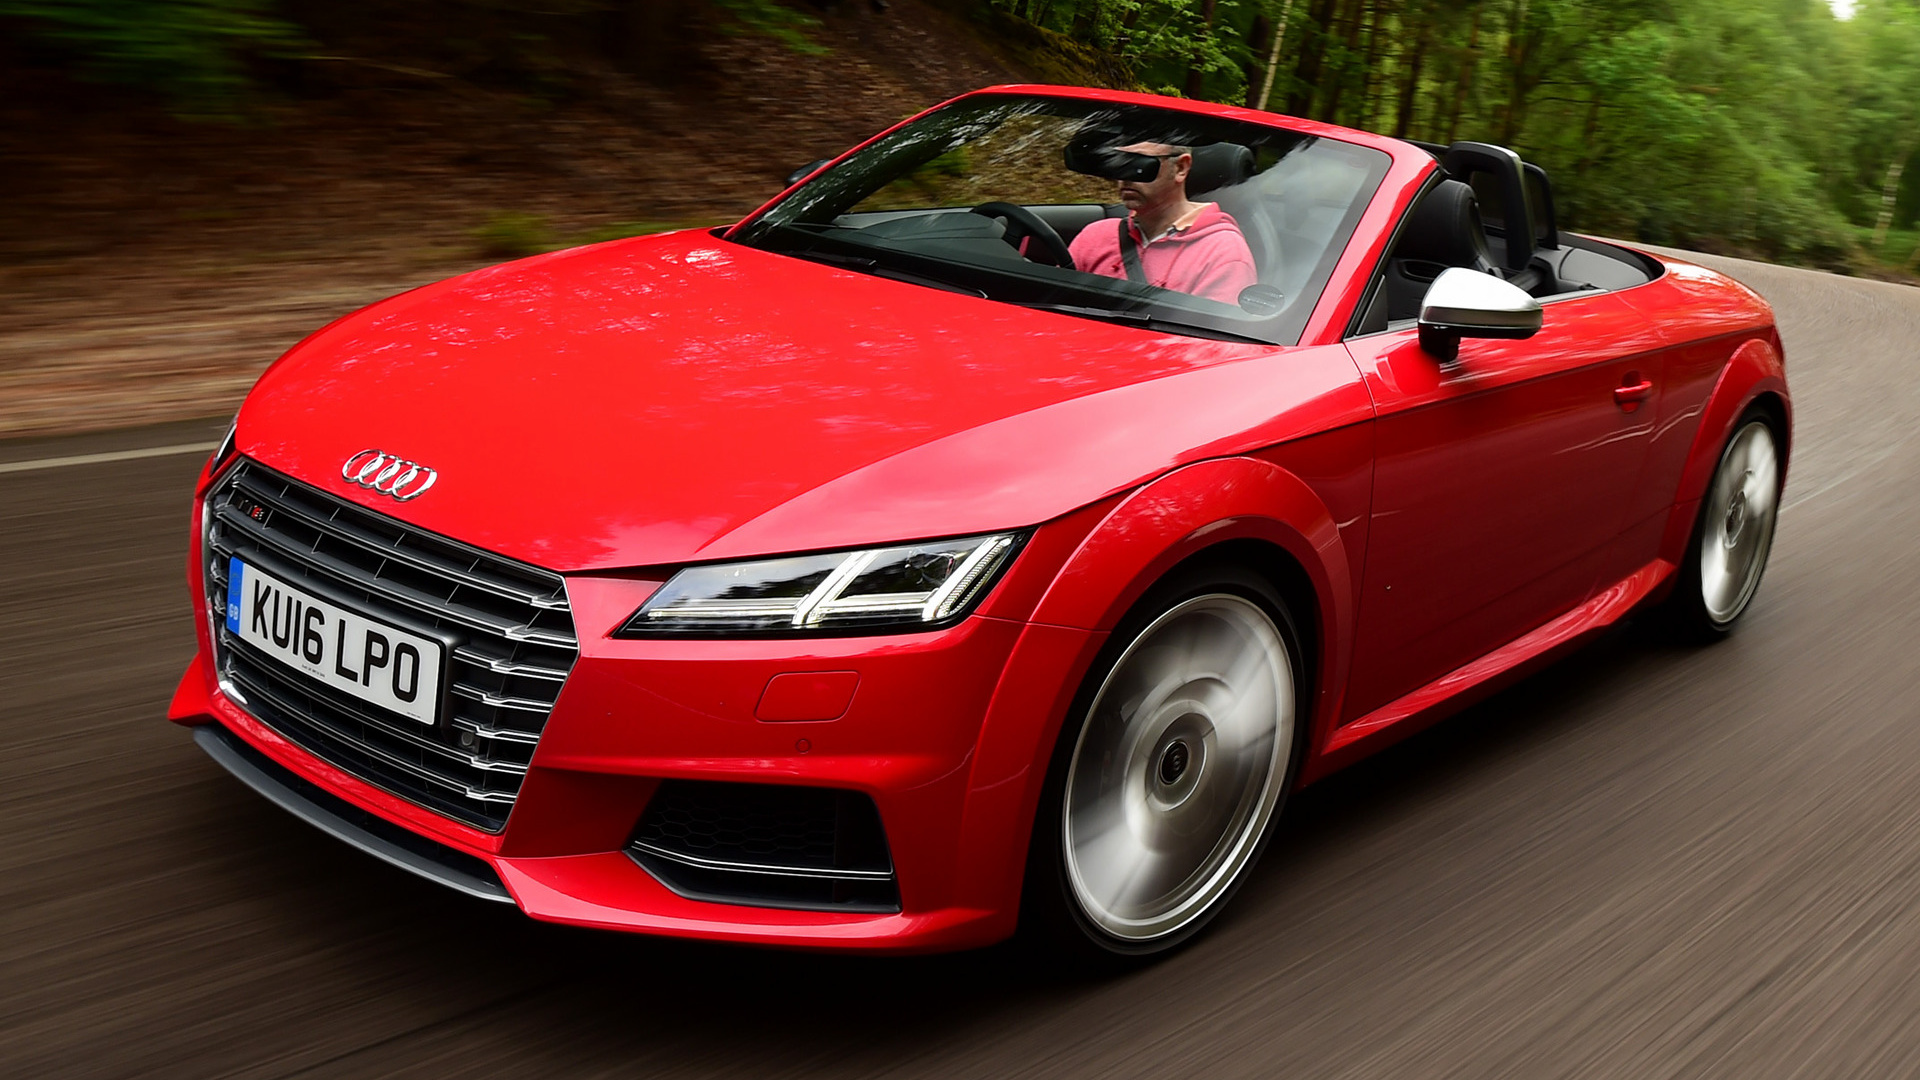 2015 Audi TTS Roadster (UK) - Wallpapers and HD Images ...